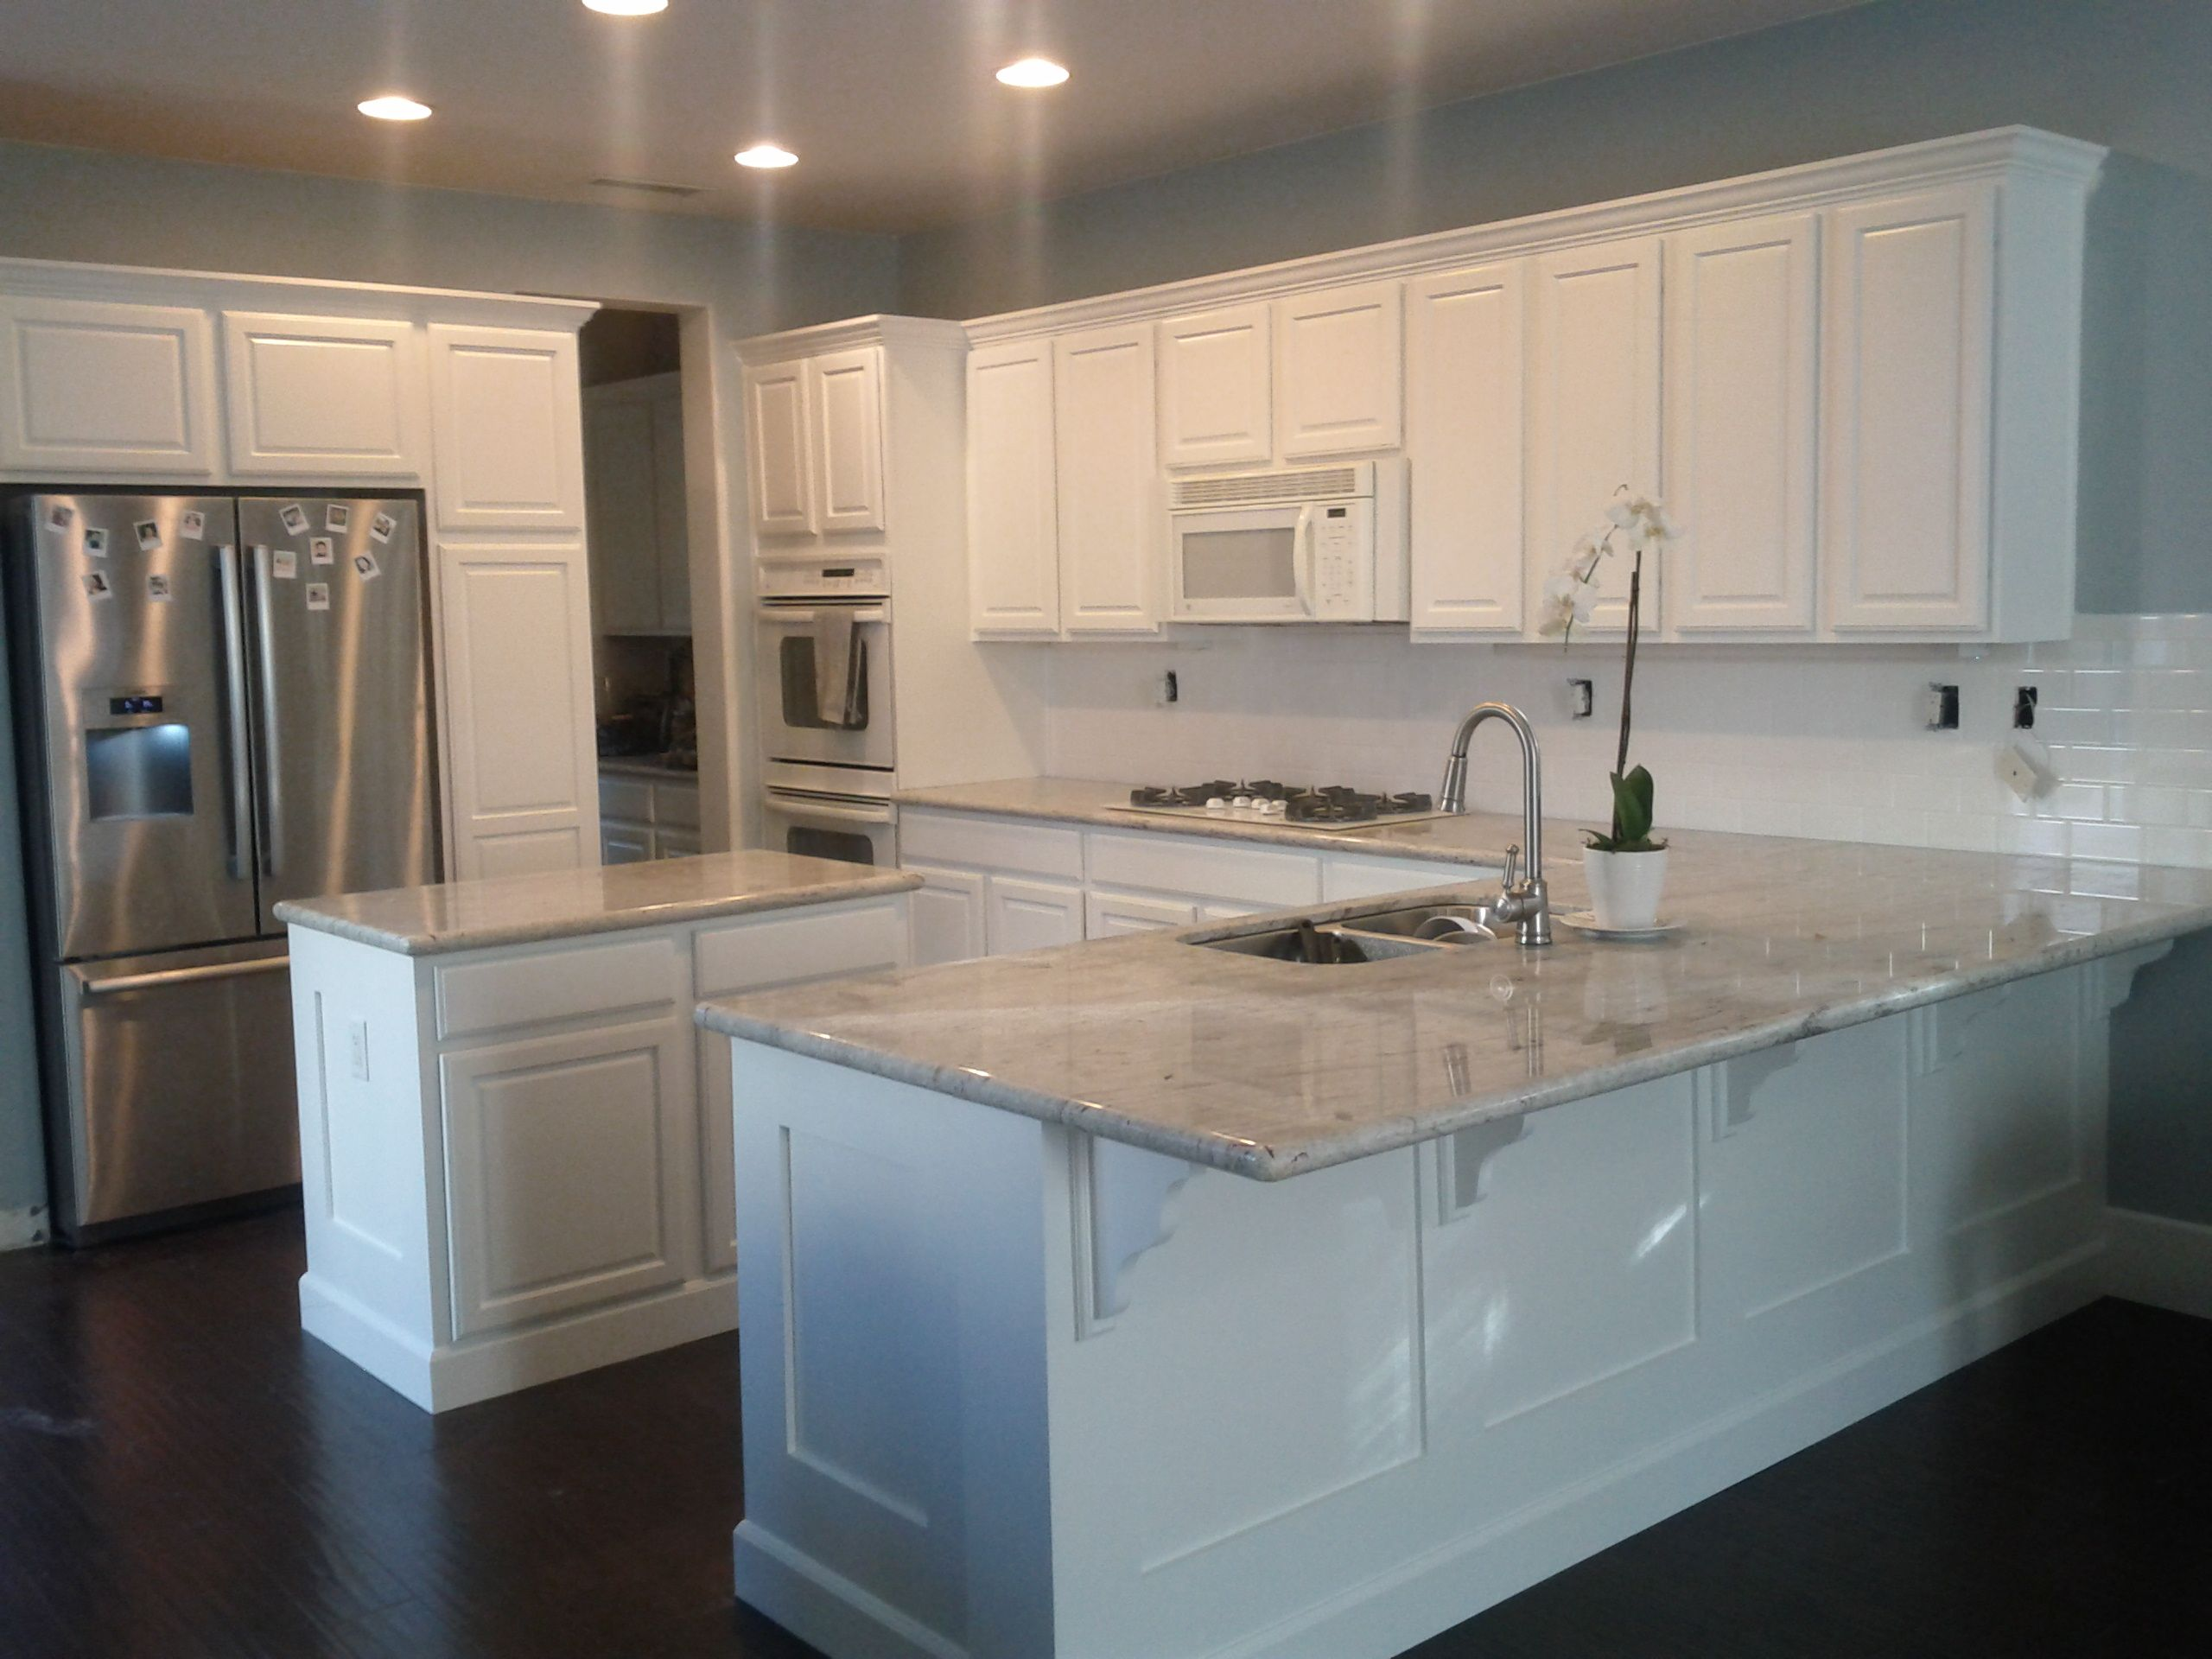 New Kitchen That Work My New Kitchen River White Granite Benjamin Moore White Dove